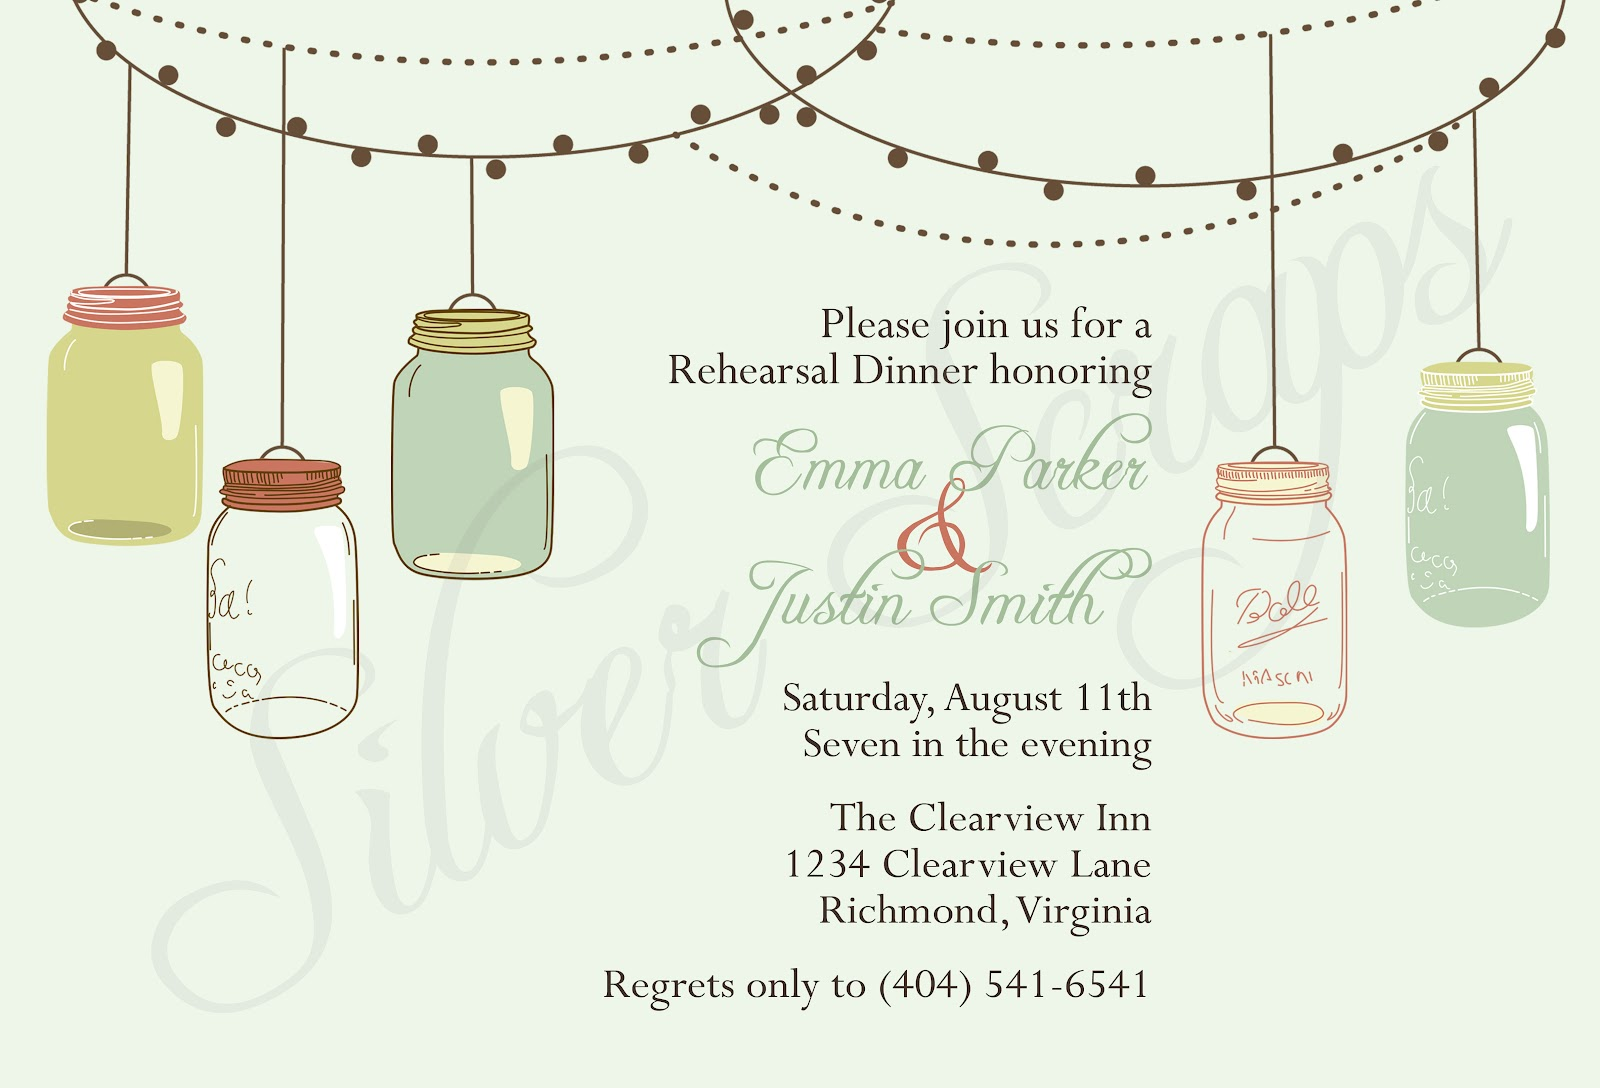 Finding Beauty in Life Vintage Mason Jar Invitations for Garden Party